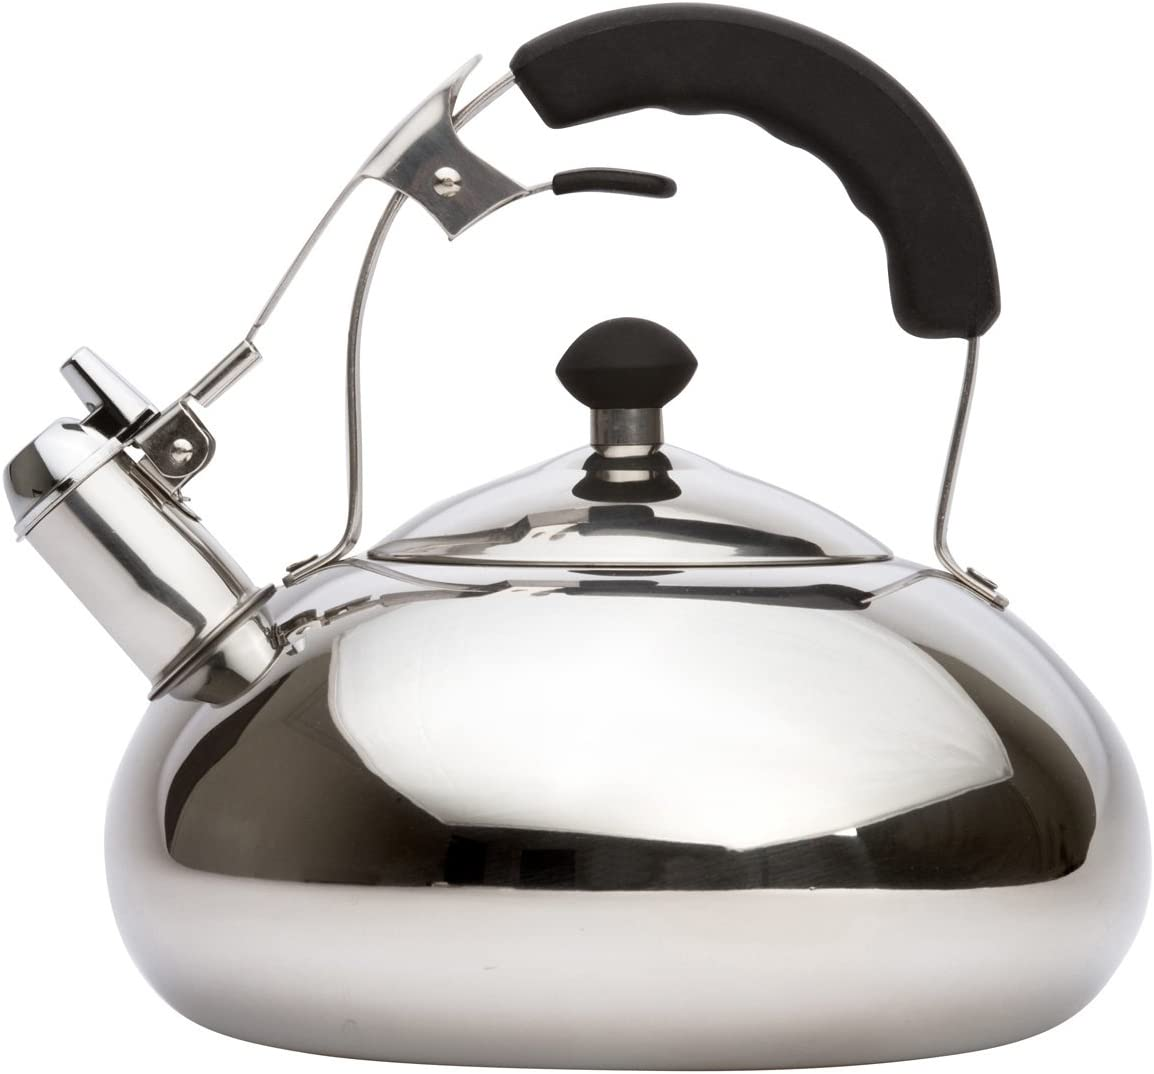 Vanika 3.2 Quart Stainless Steel Tea Kettle